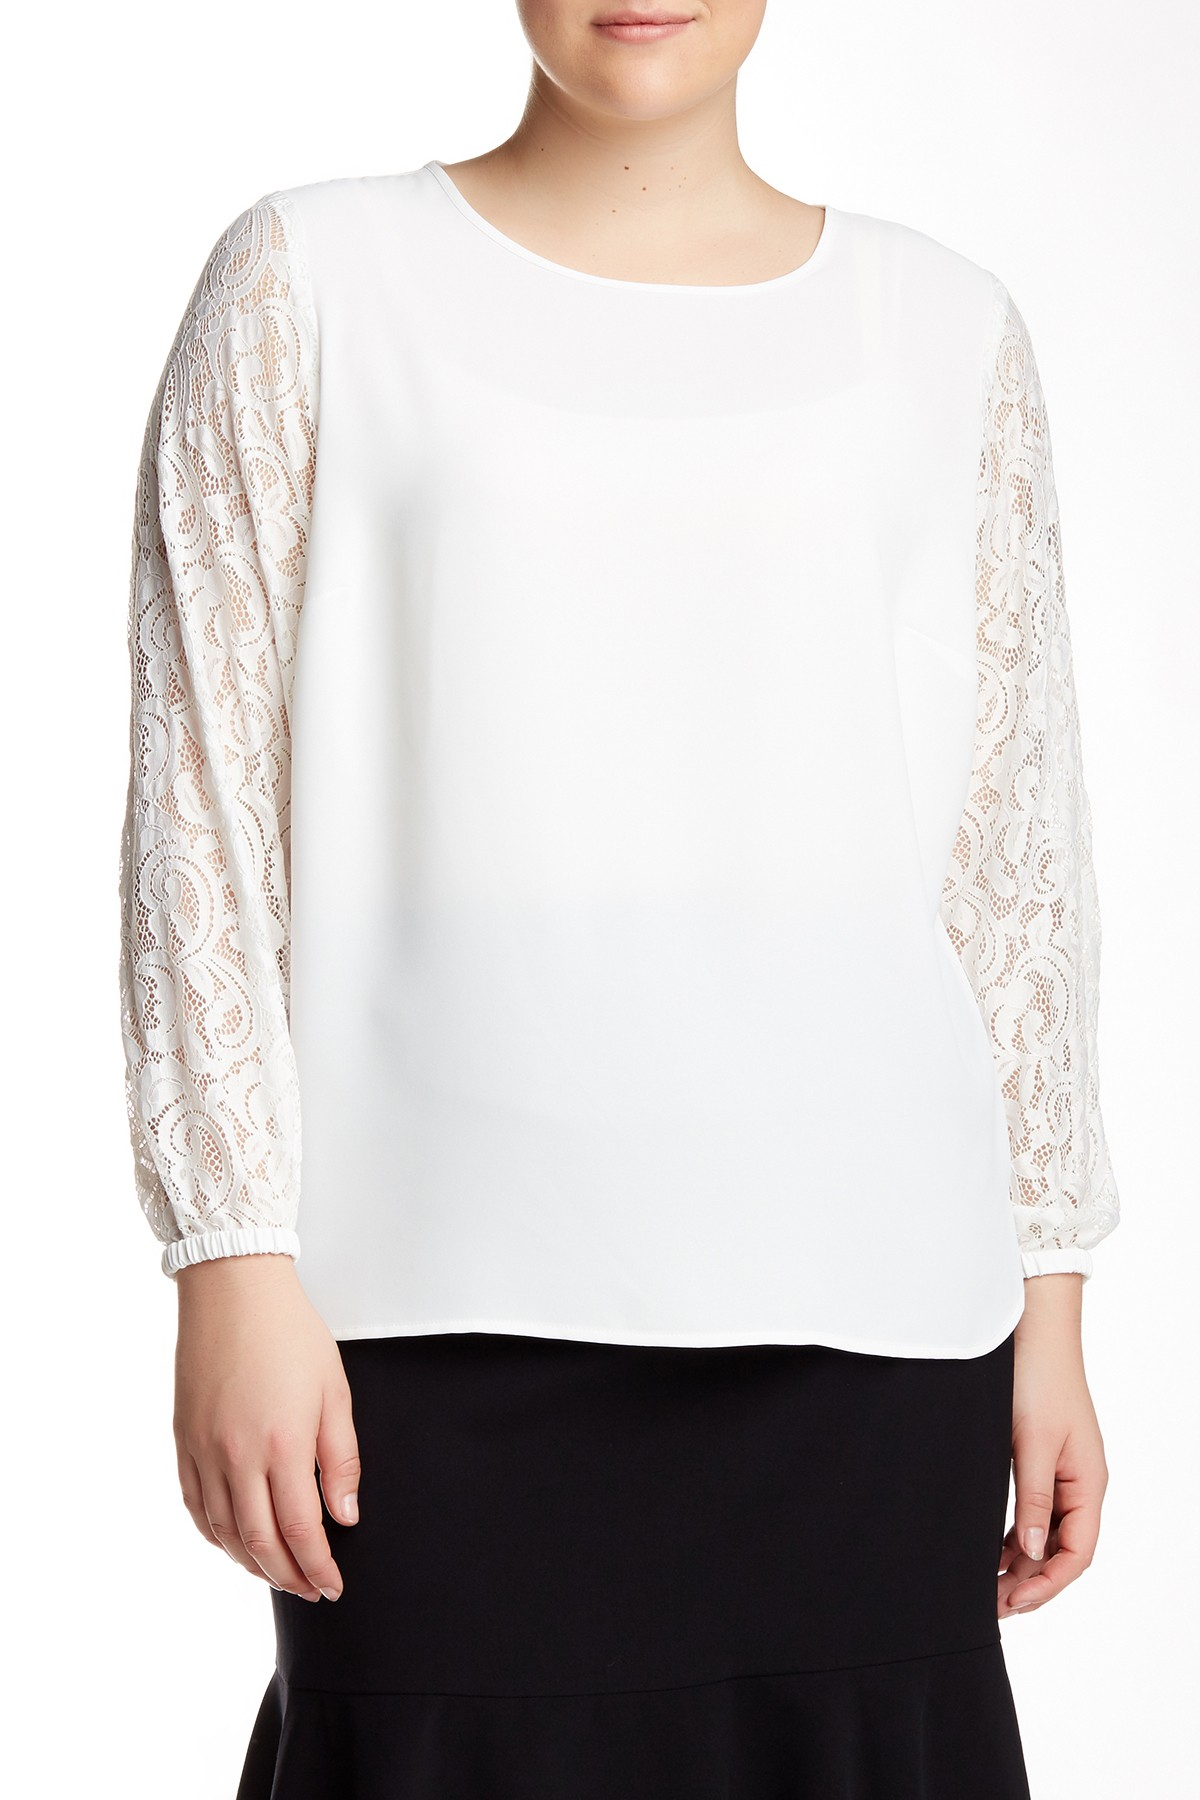 Lyst Nine West Mixed Media Blouse Plus Size In White